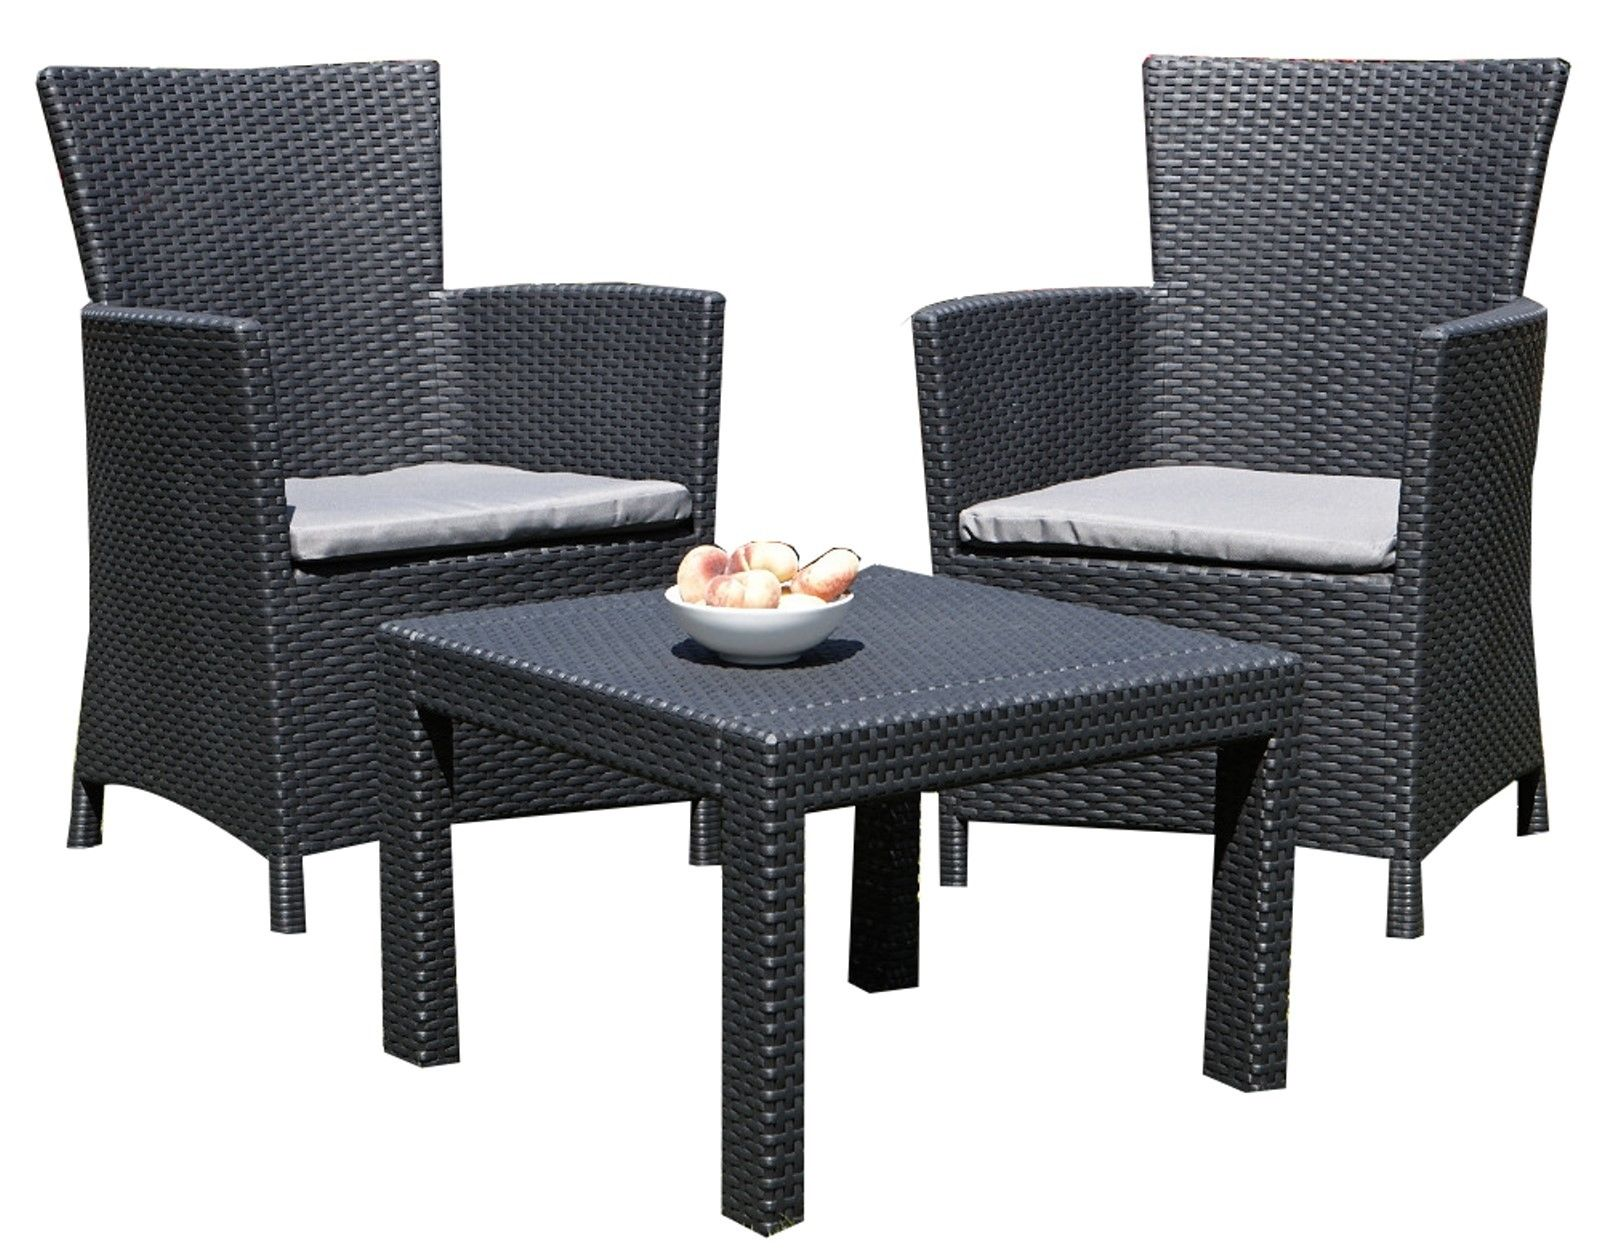 3tlg rattan lounge sitzgruppe miami garnitur gartenm bel essgruppe sessel set ebay. Black Bedroom Furniture Sets. Home Design Ideas